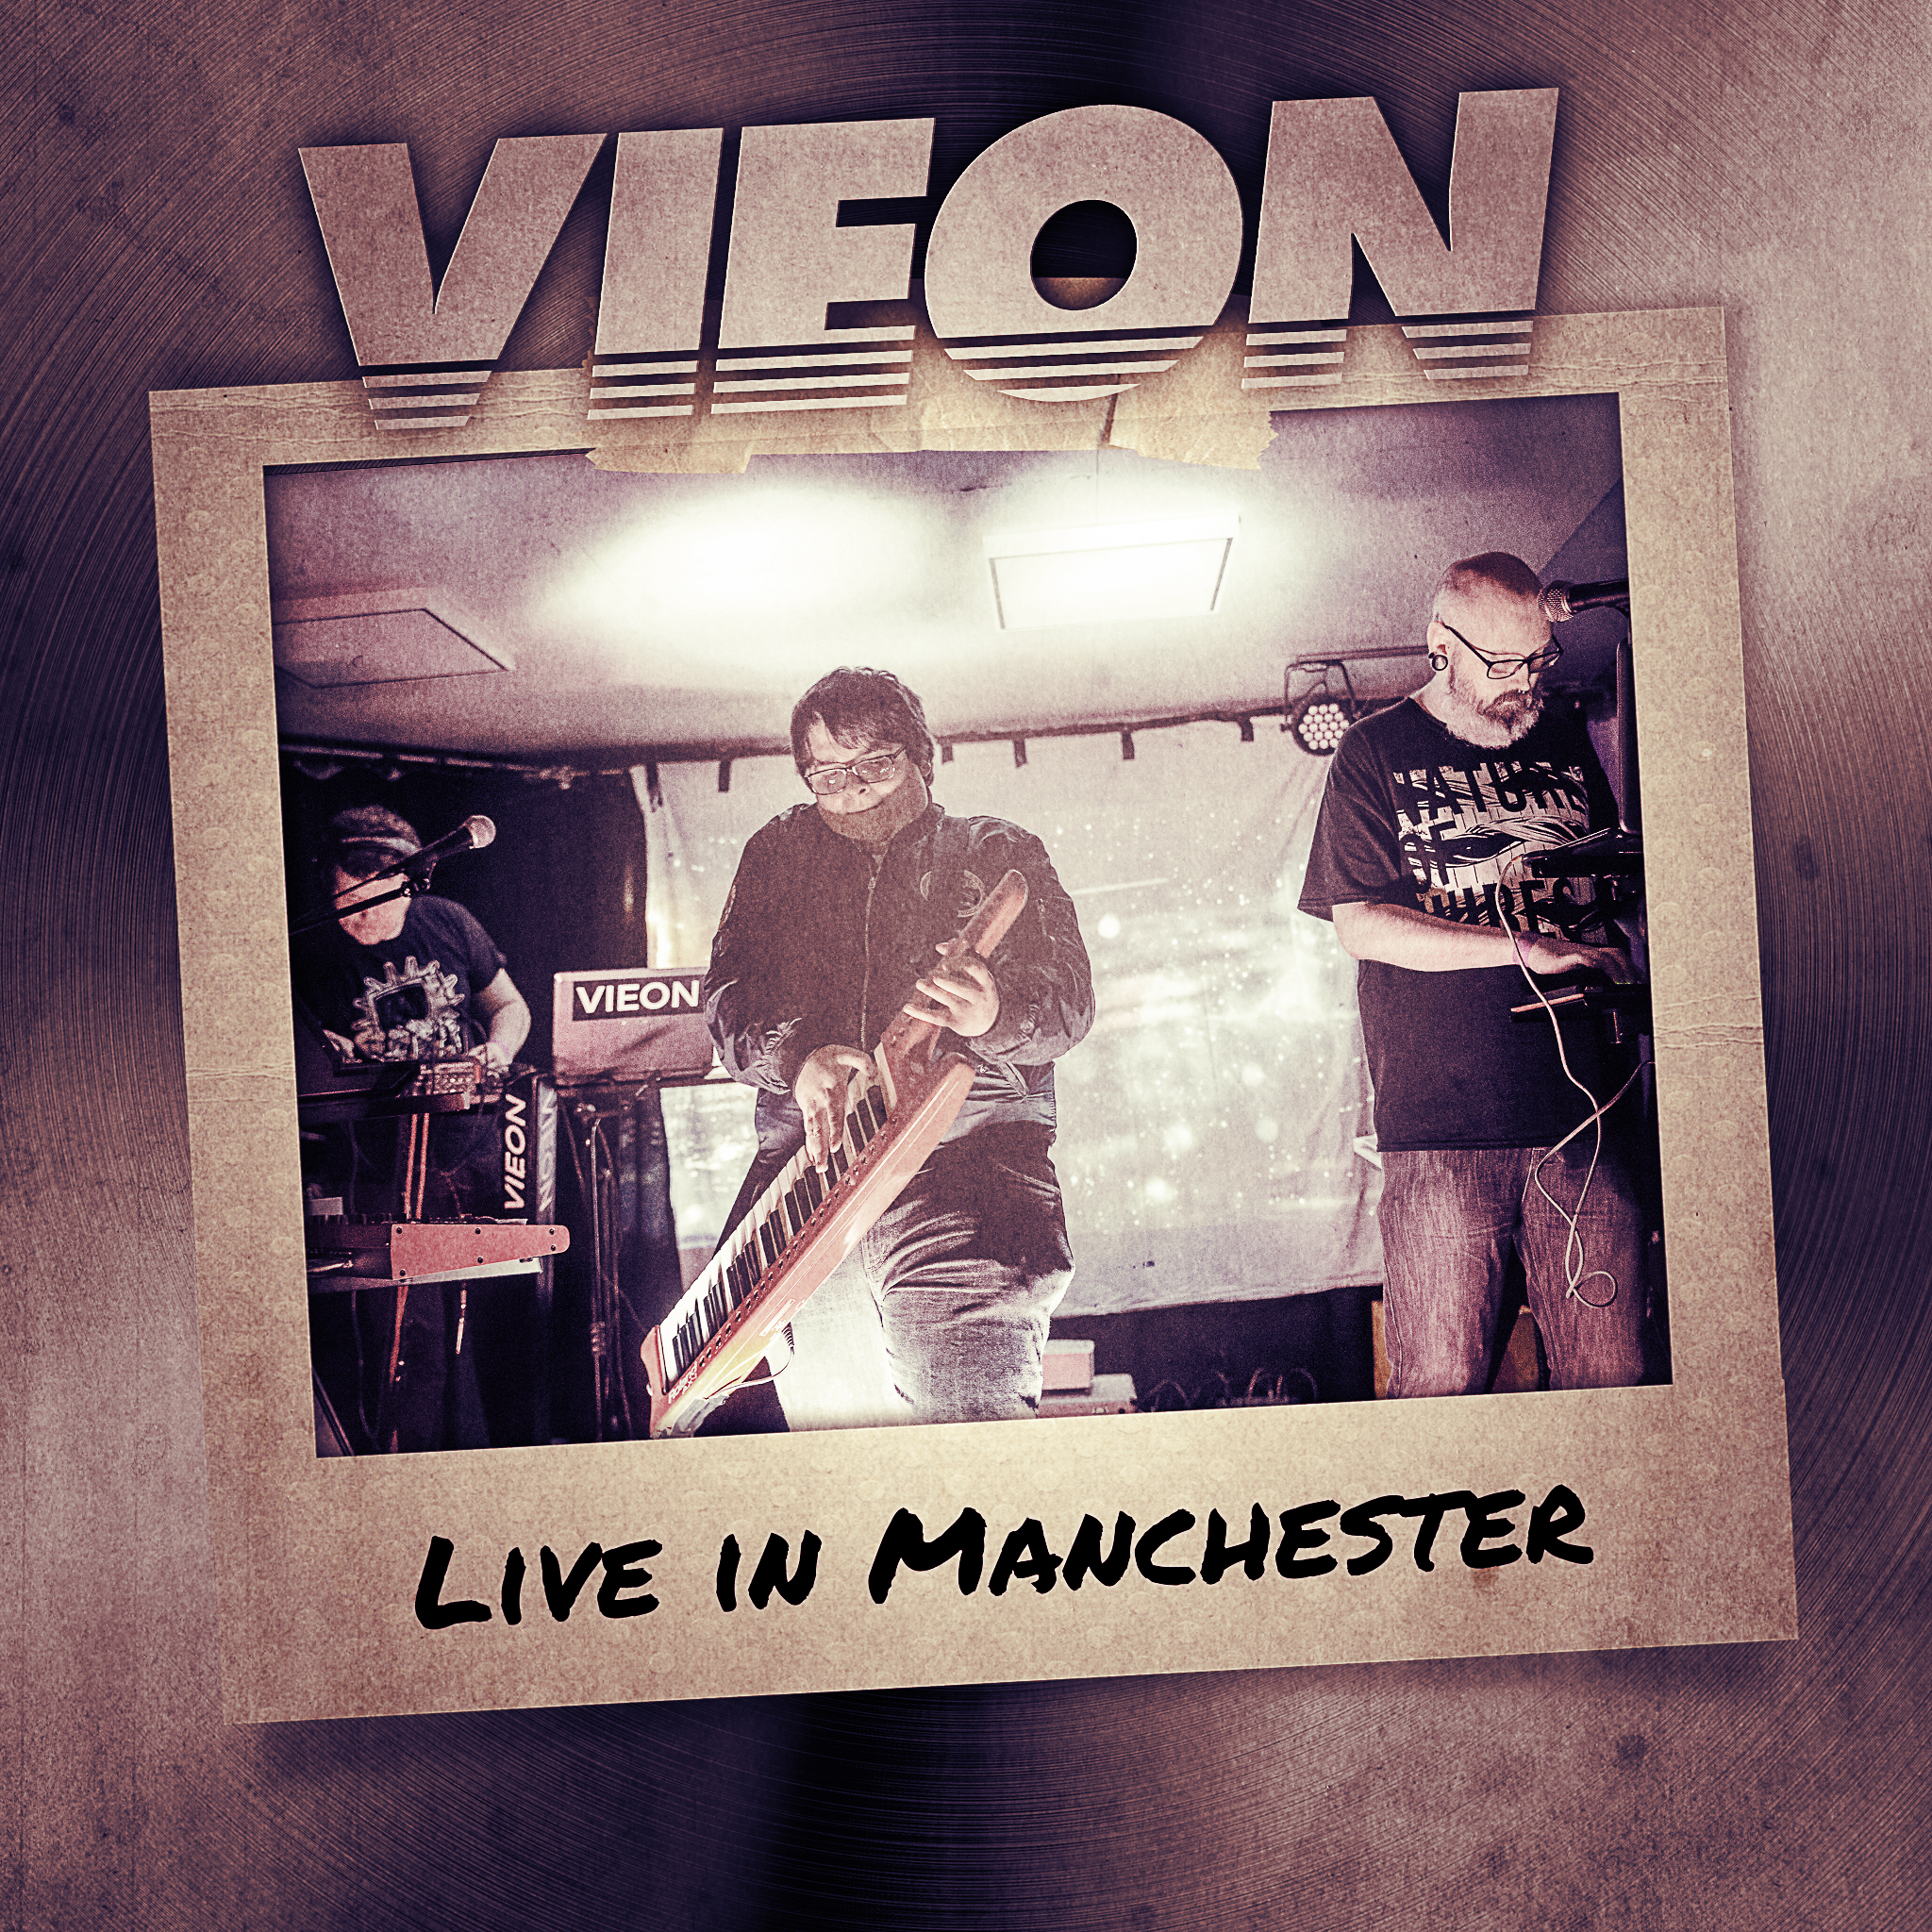 Vieon - Live in Manchester